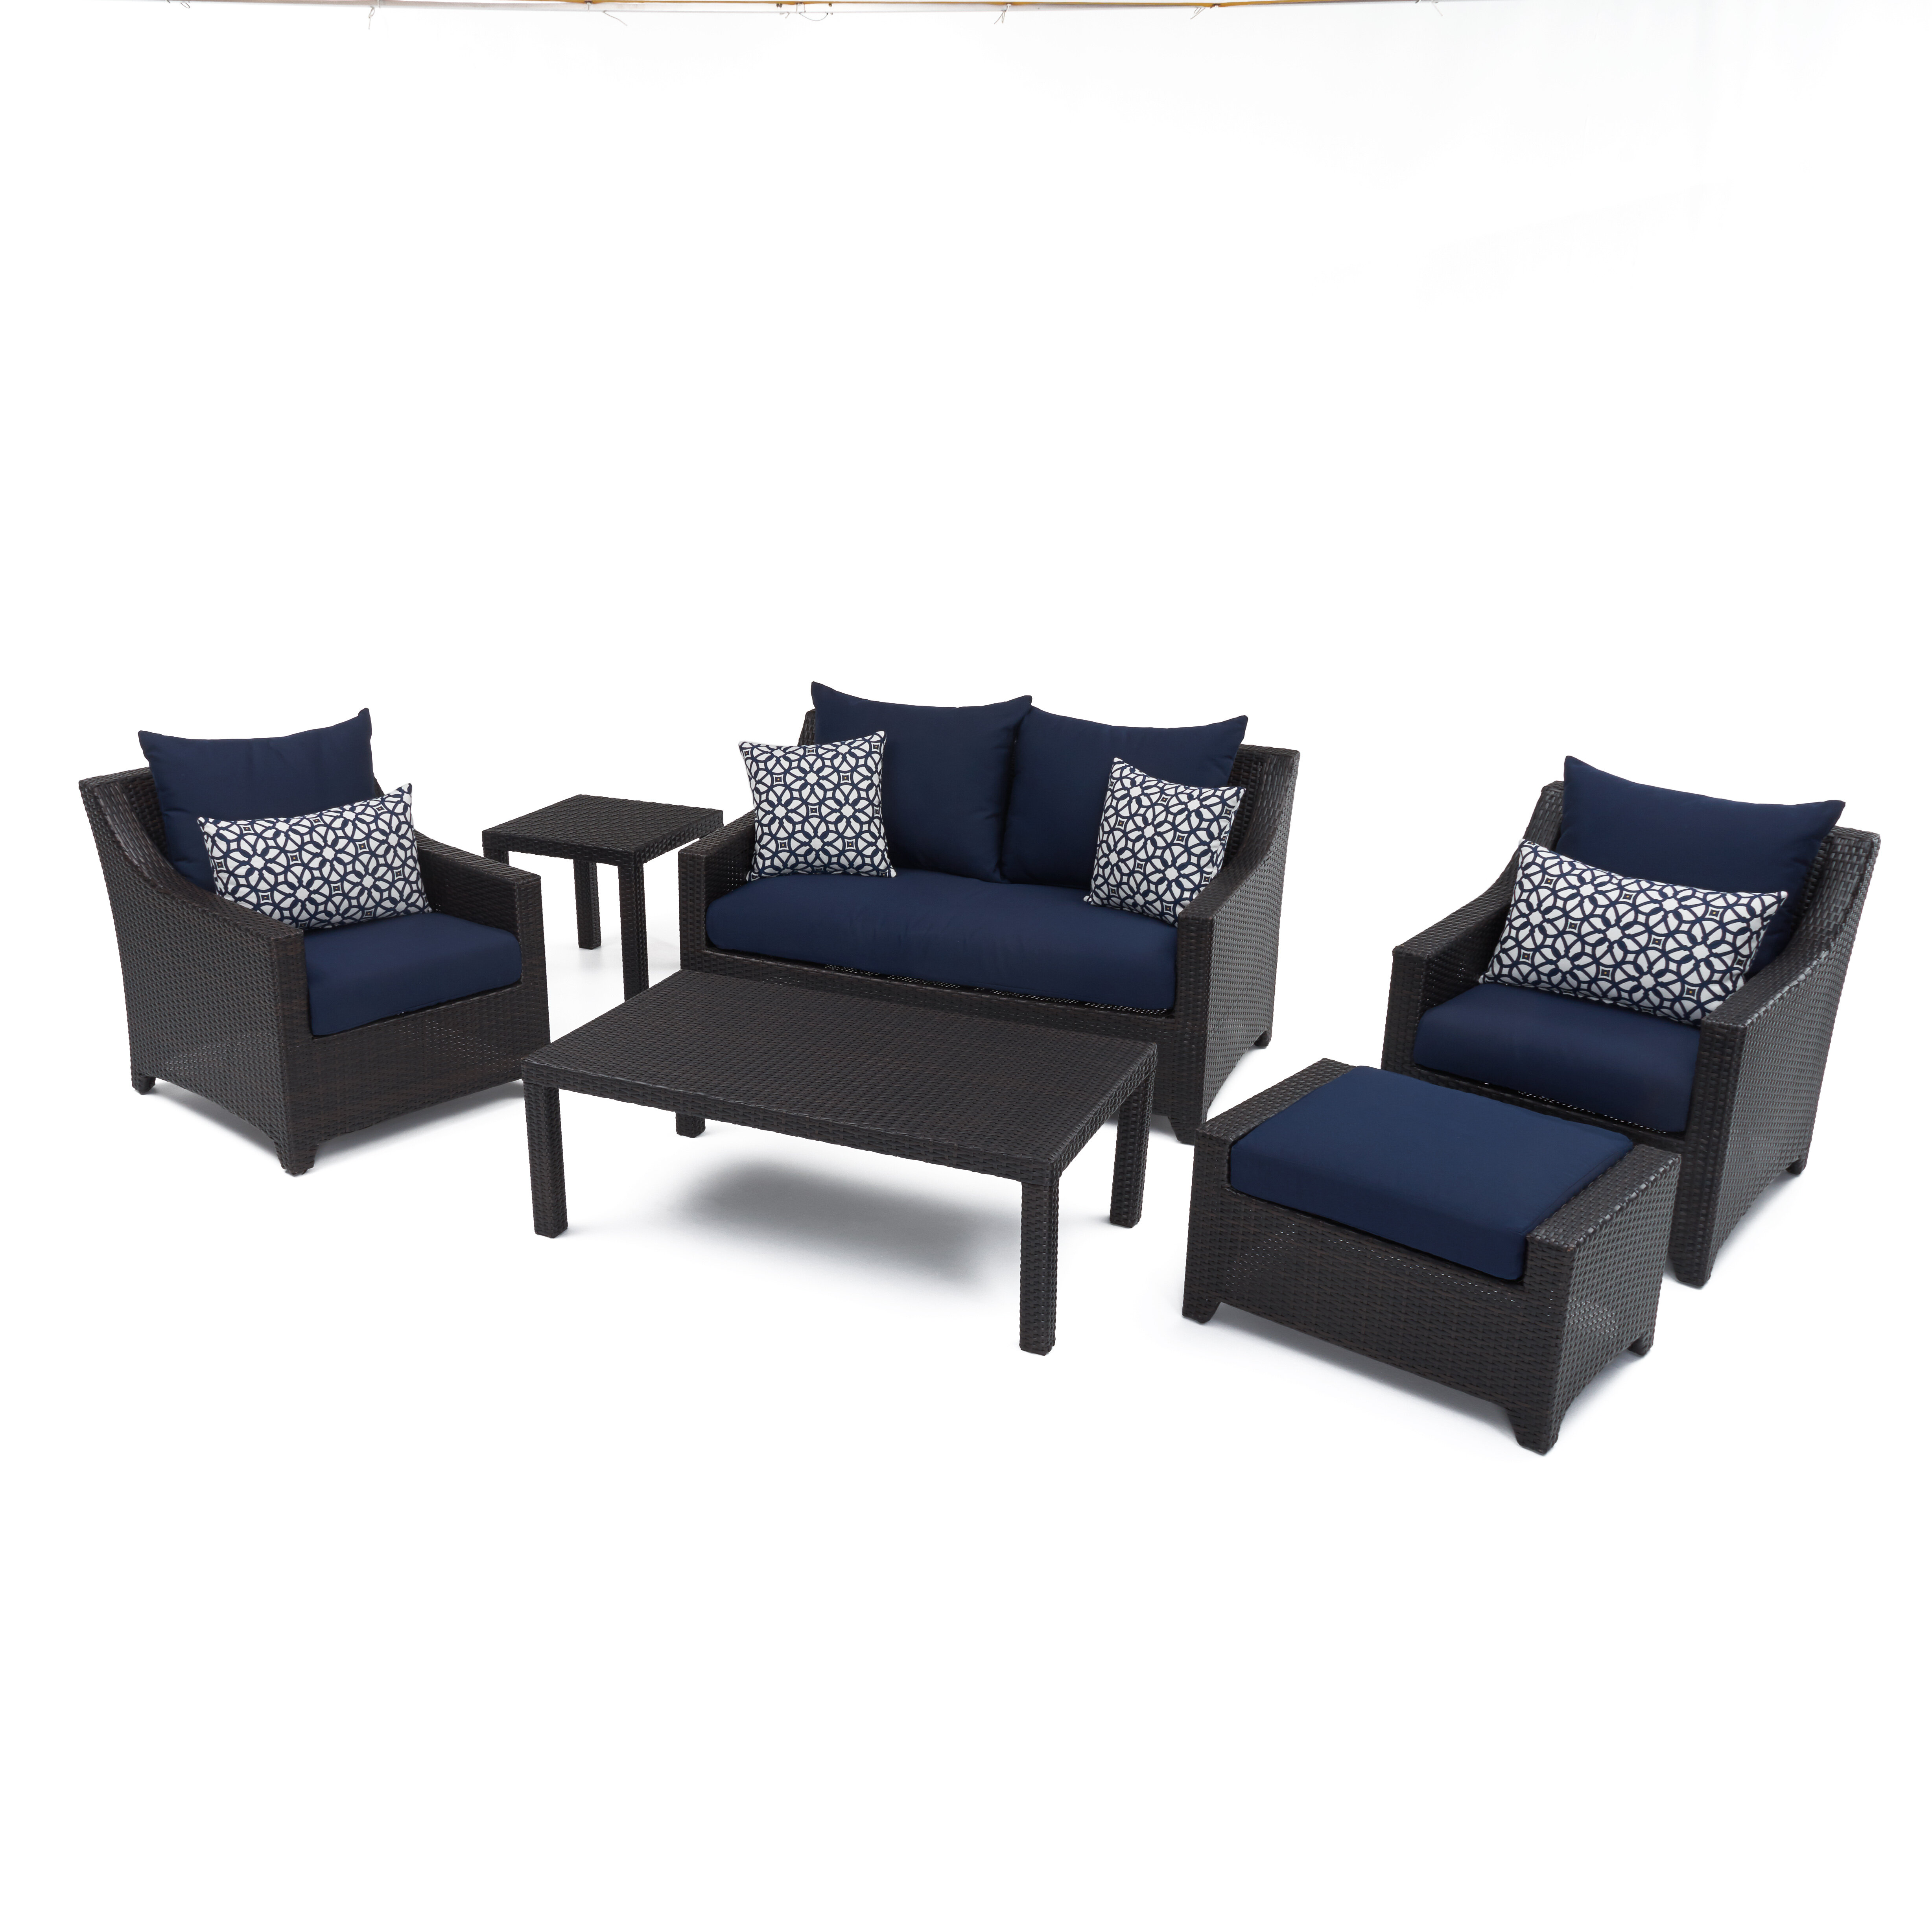 Navy Blue Patio Furniture